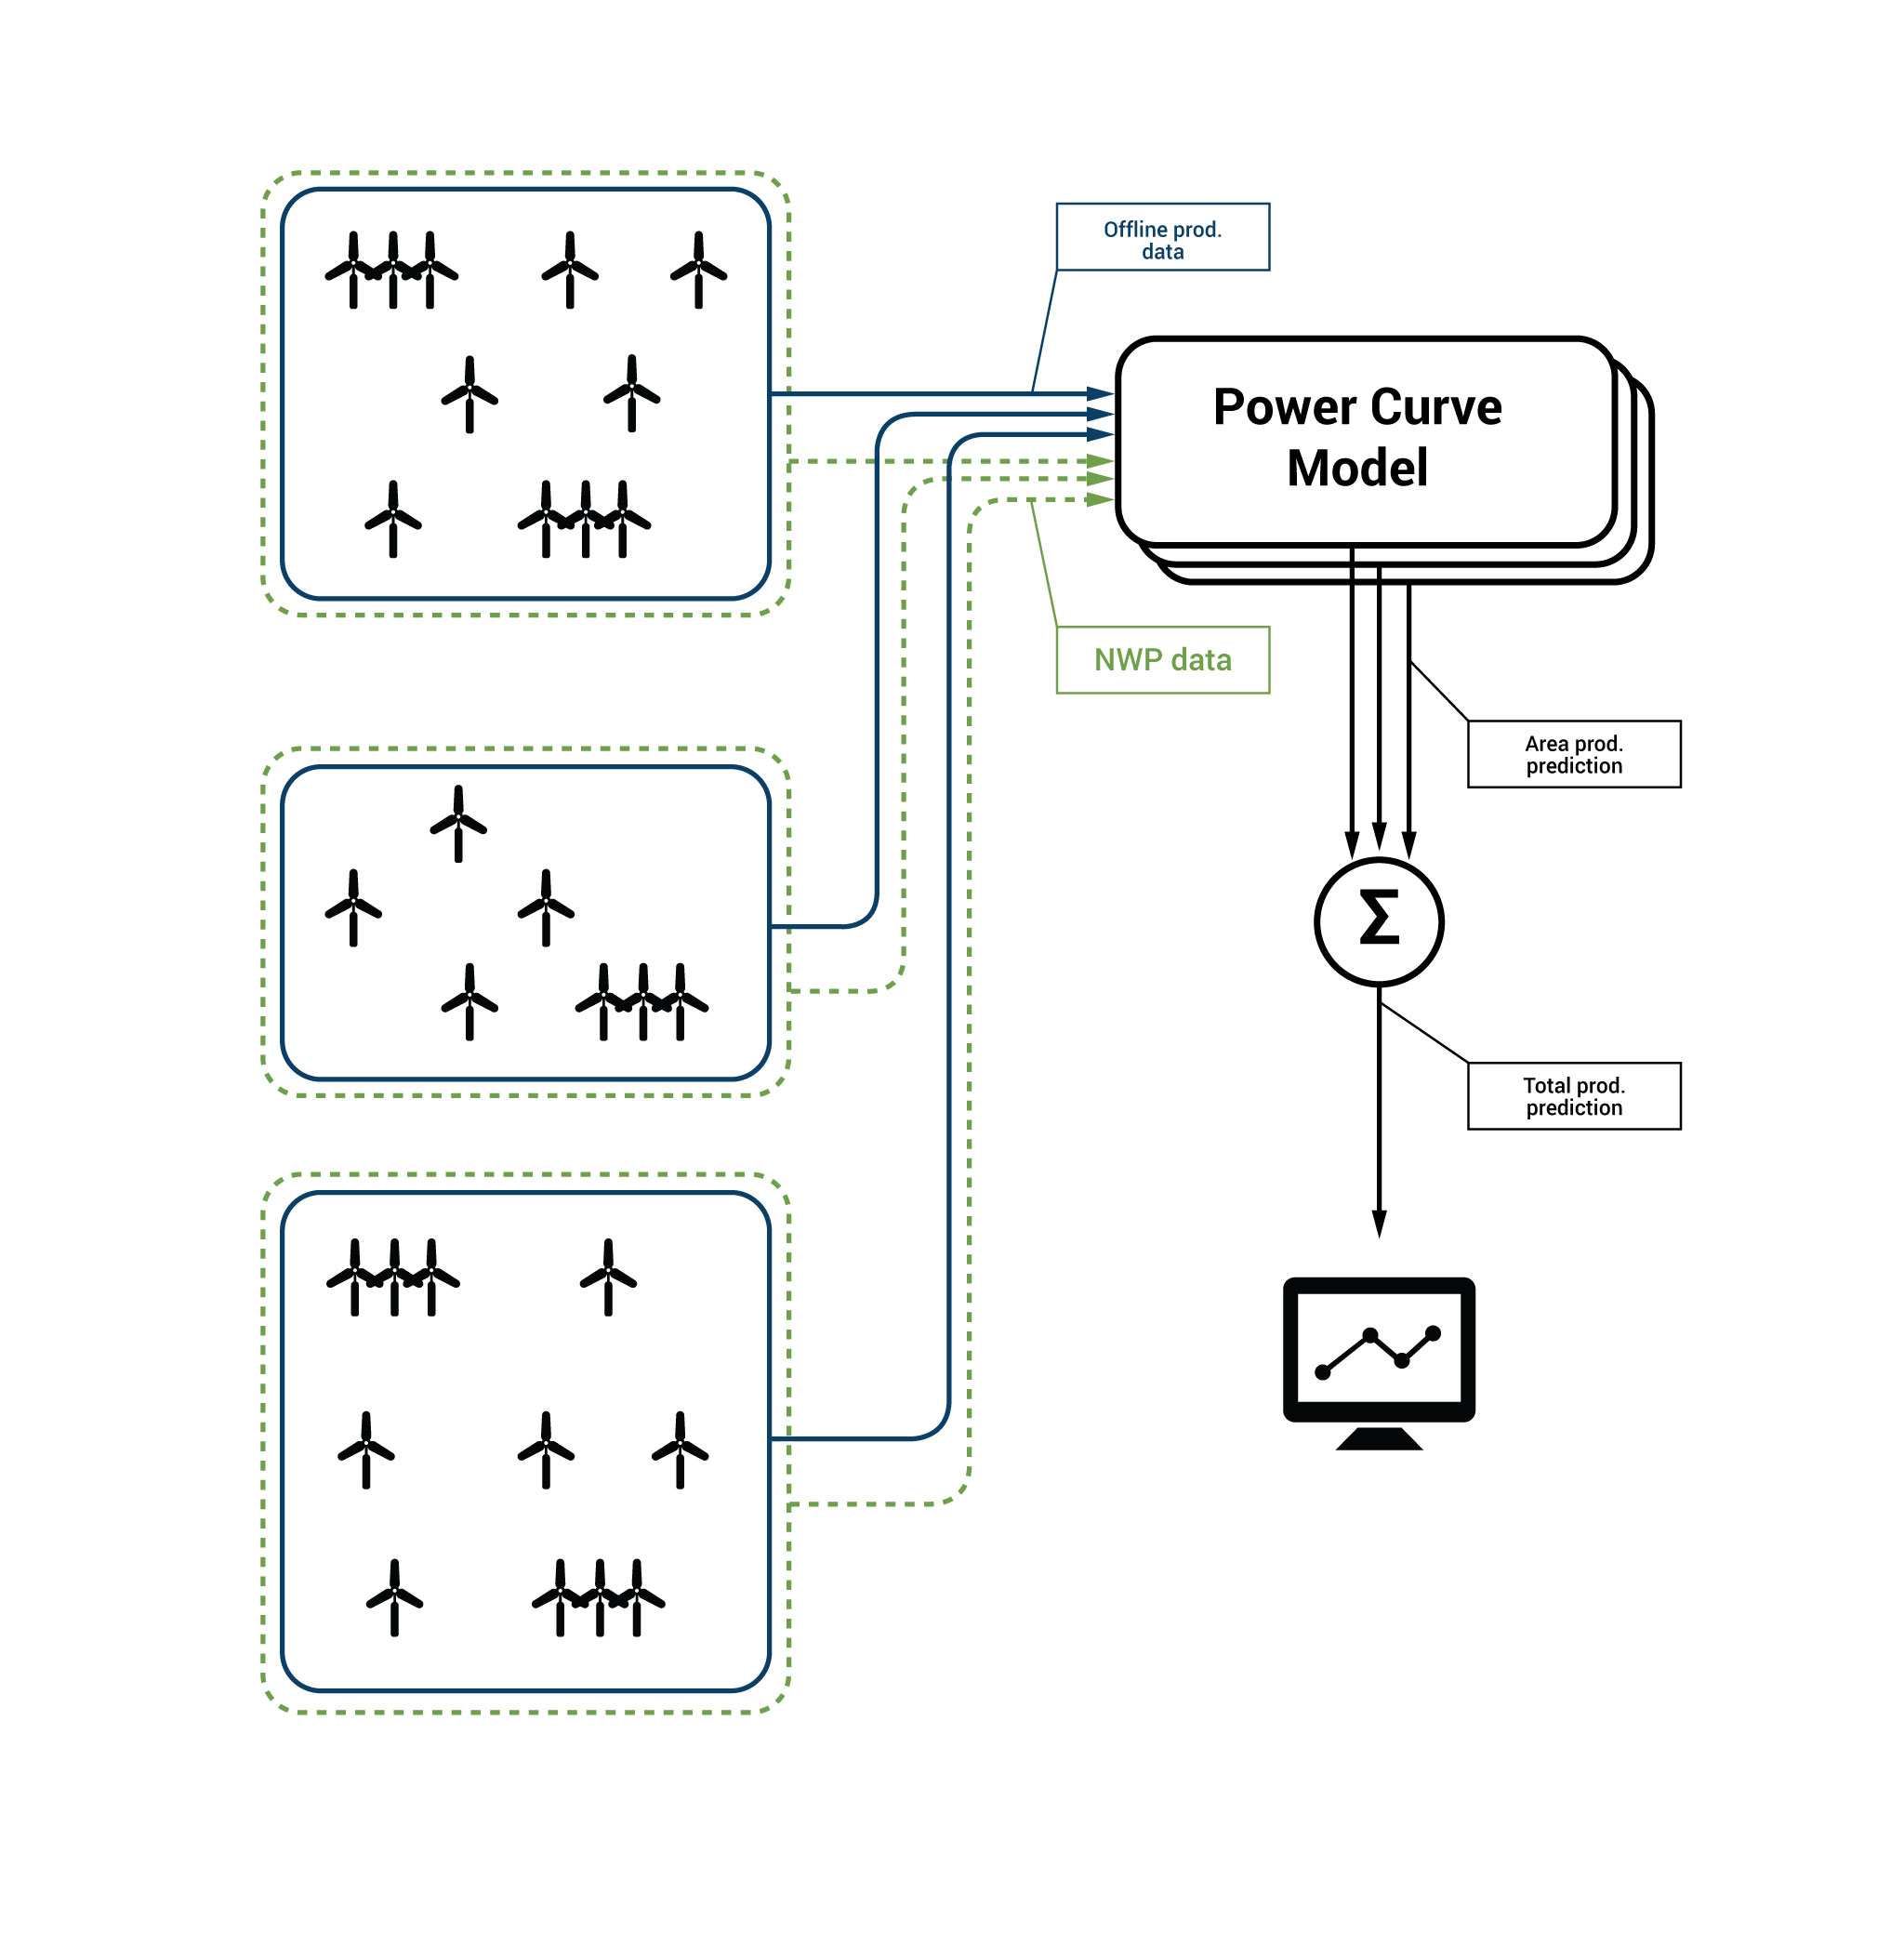 Example configuration 1: Potential electricity traderssetup - off-line mode with changing portfolio of wind farms